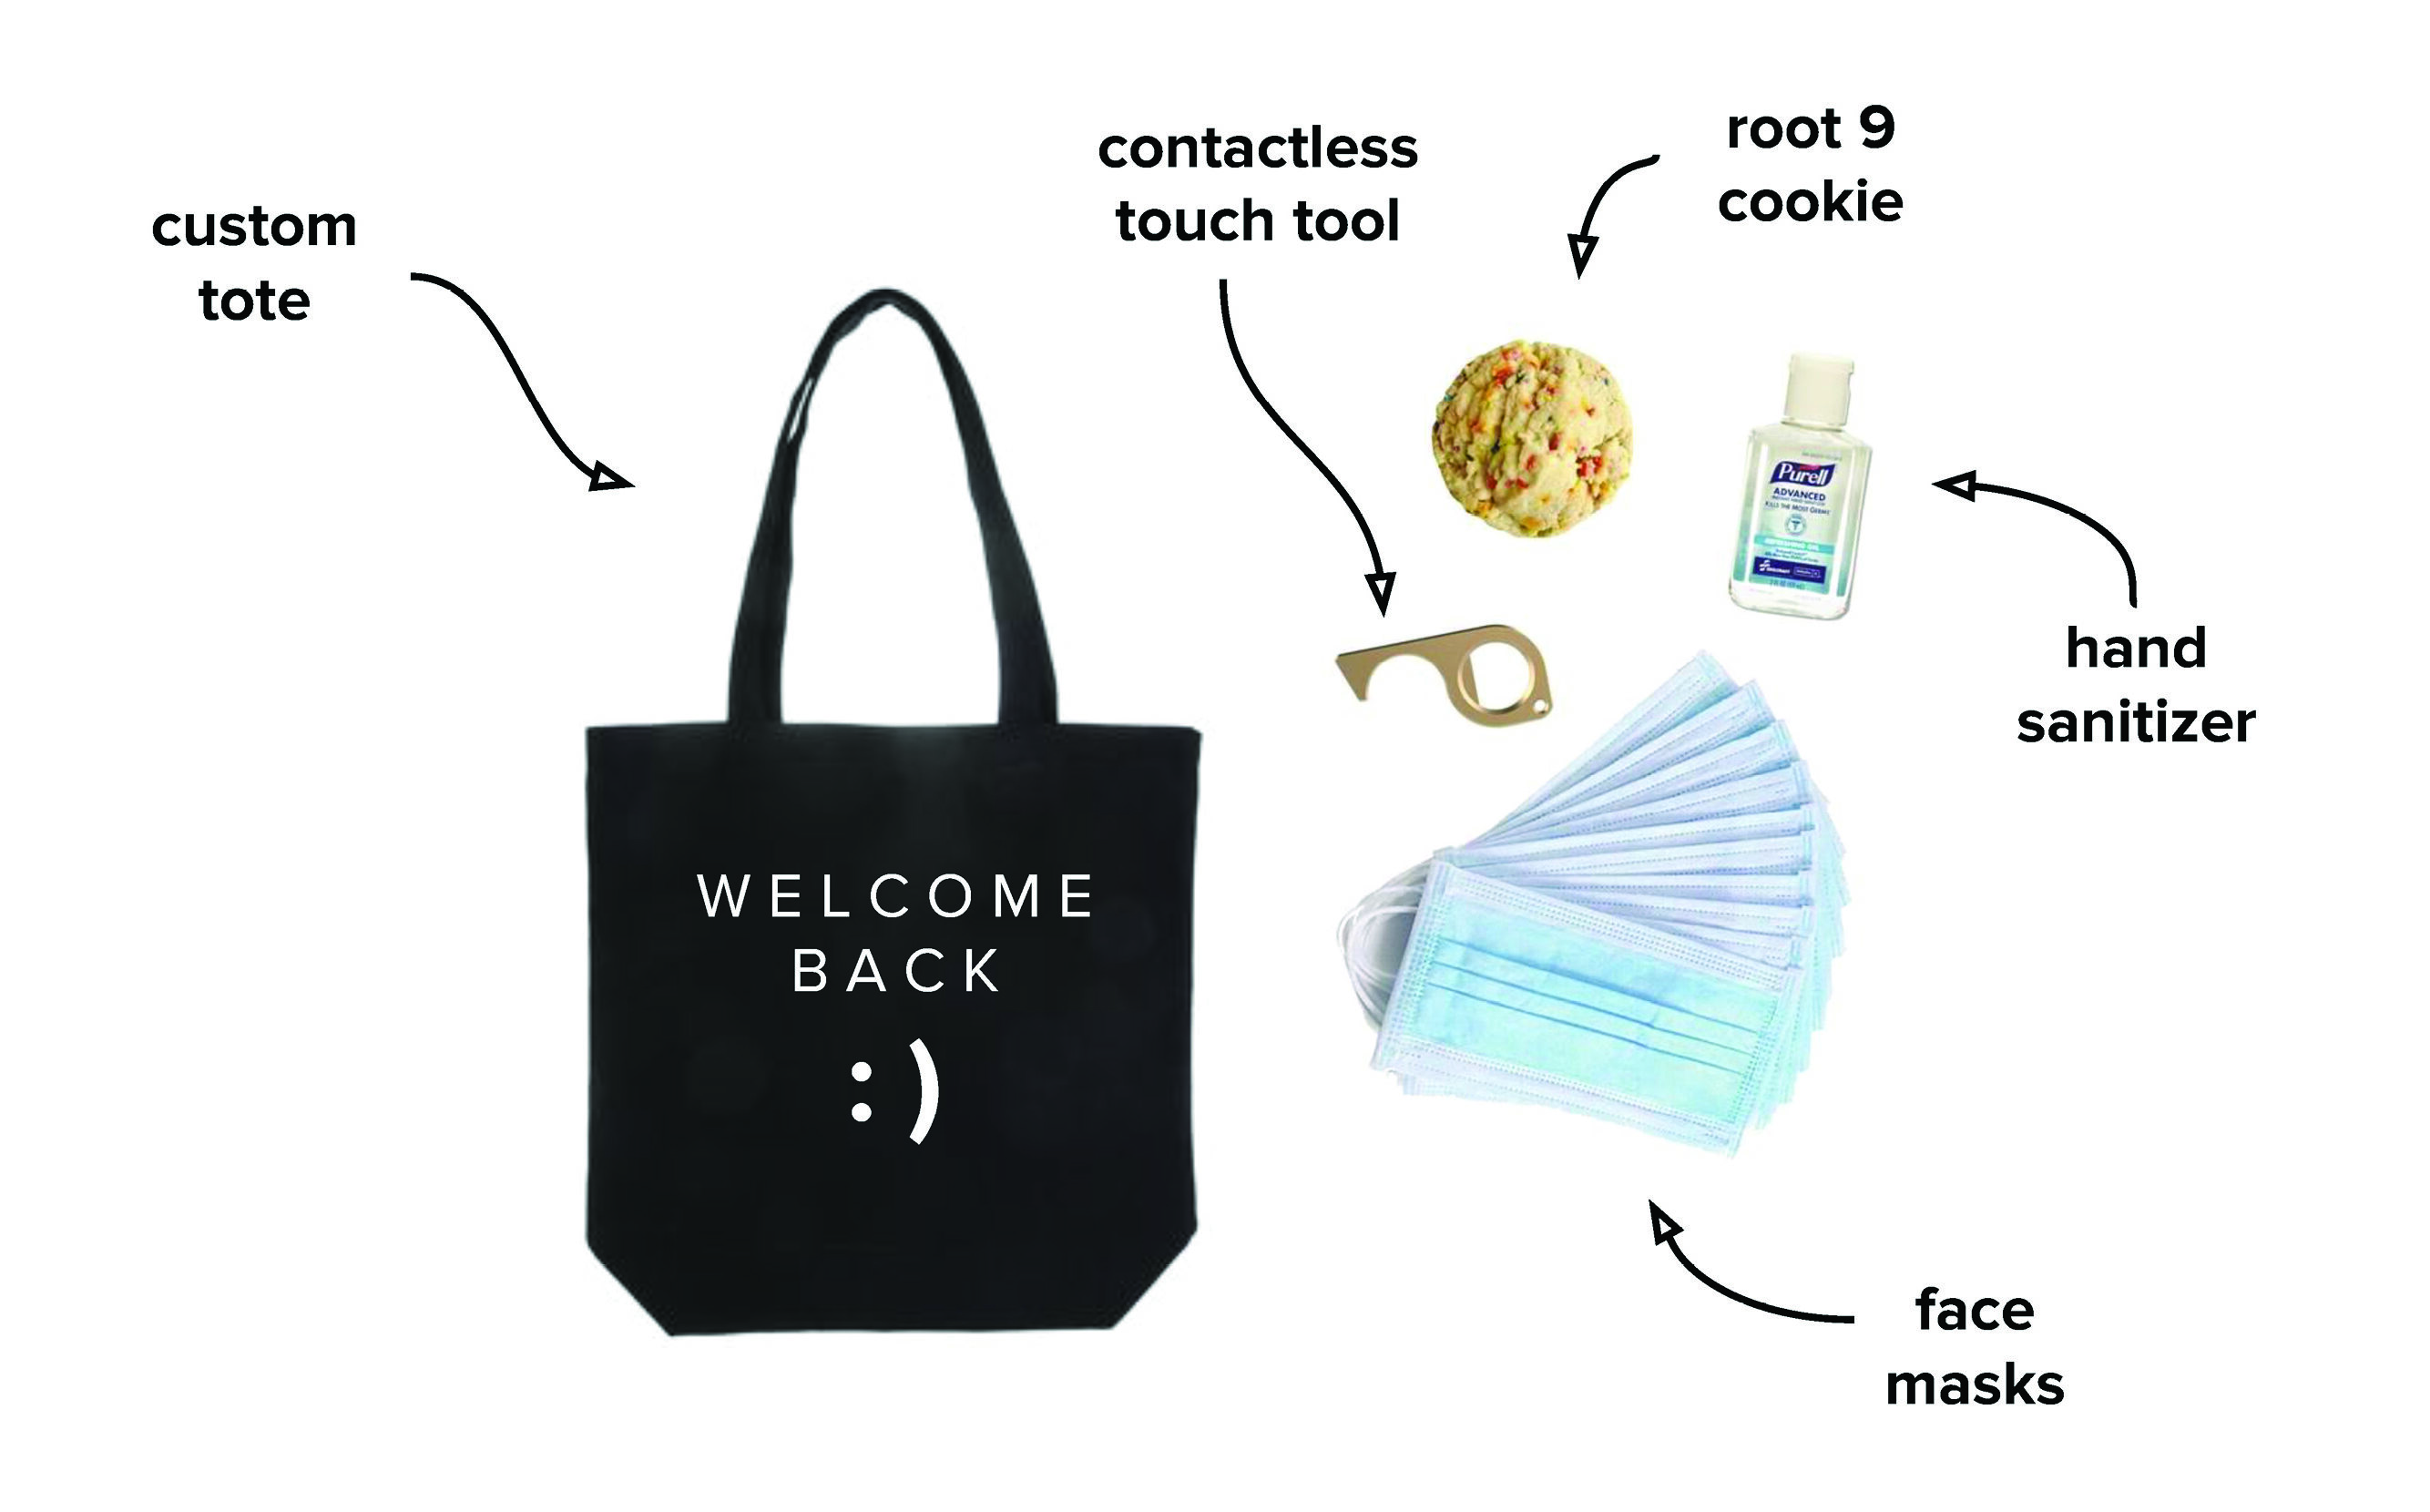 Welcome back employees after Covid-19, includes contactless touch tool, face masks, hand sanitizer, Root9 plant-based cookie.